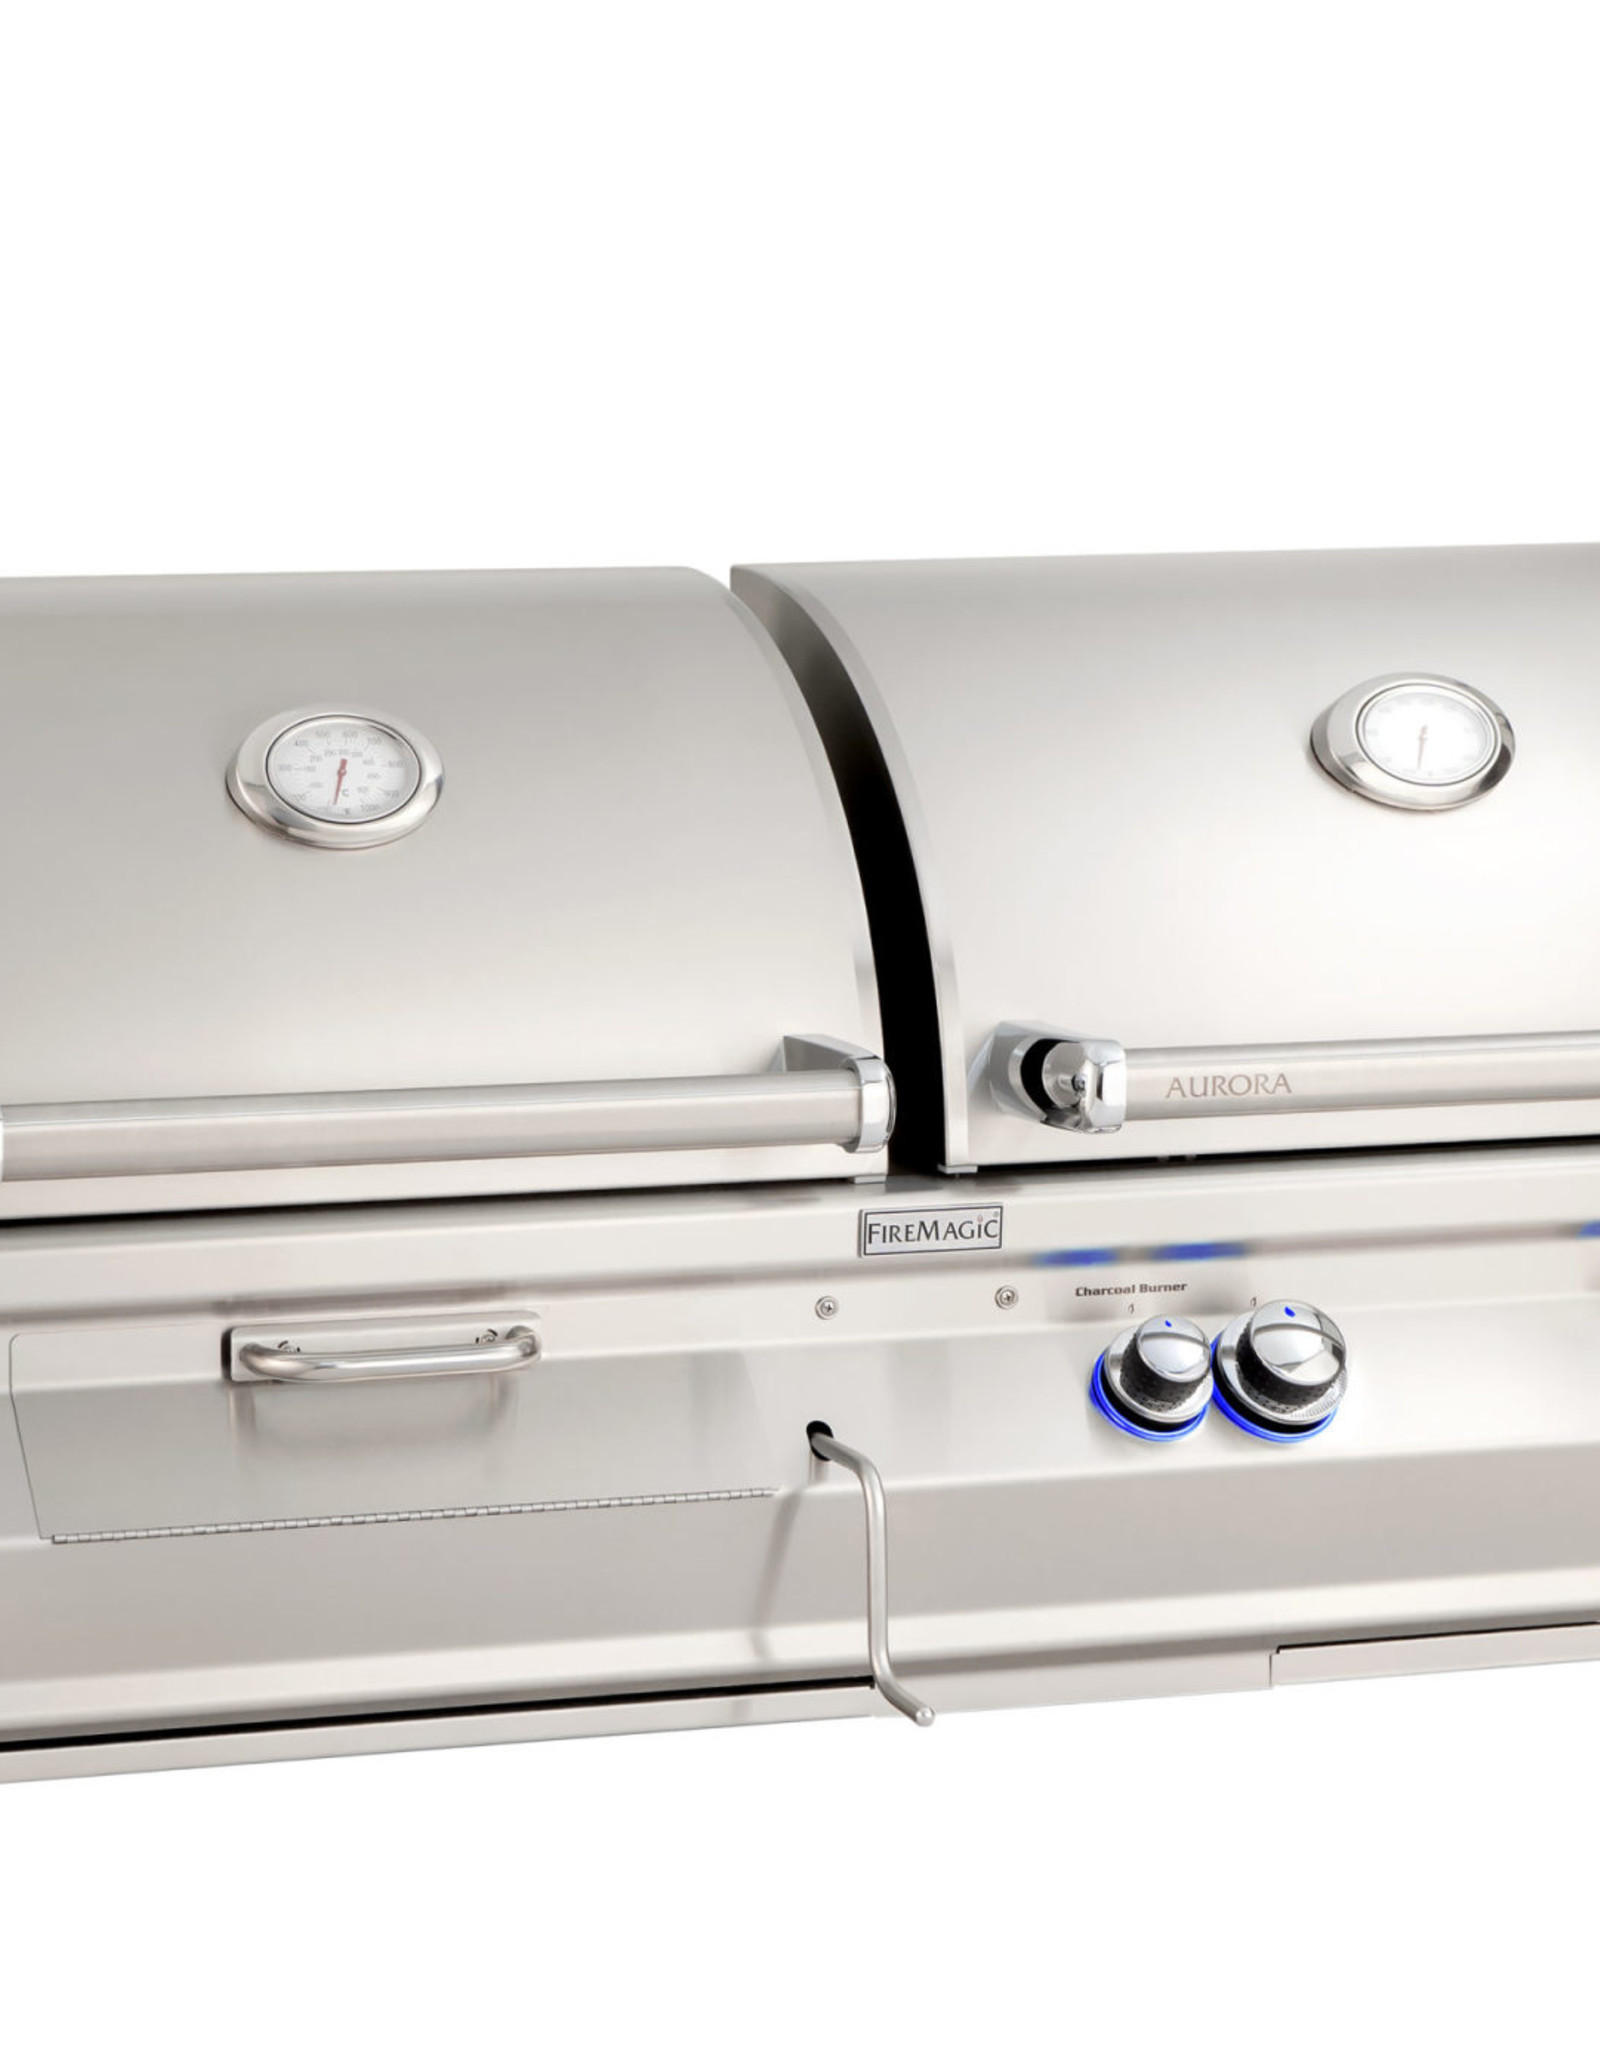 Fire Magic Fire Magic - Aurora A830i 46-inch Built-in Gas and Charcoal Combo Grill With Rotisserie